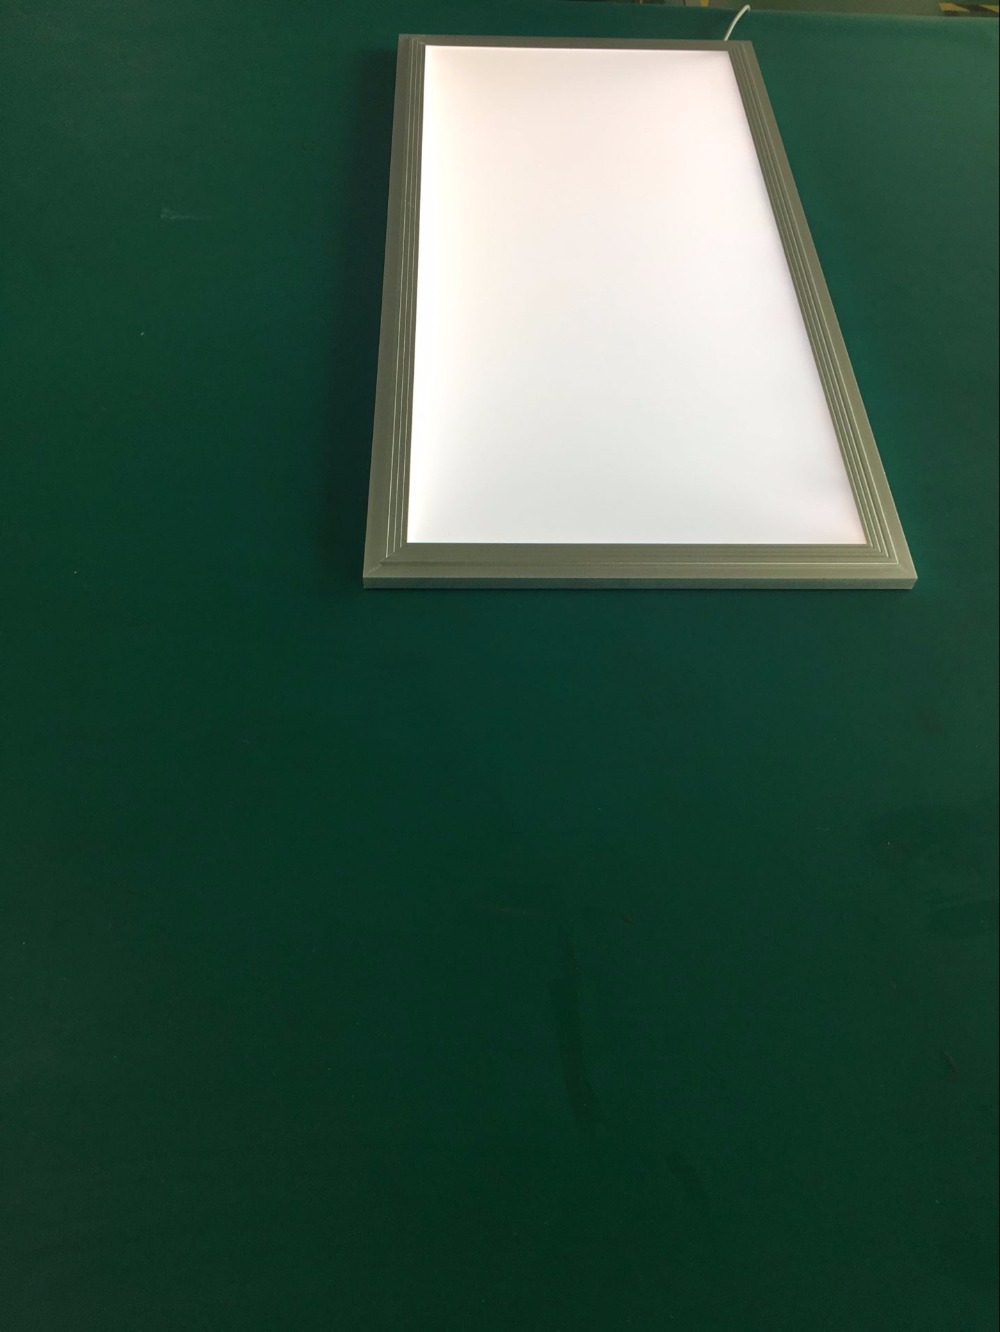 Free Shipping New Arrival 300x600mm 18W  RGB Color LED Panel Light with Remote Control Aluminum Alloy+PMMA Material AC85-265V free shipping 600x600mm 36w rgb color led panel light with remote control aluminum pmma smd5050 super bright led chips